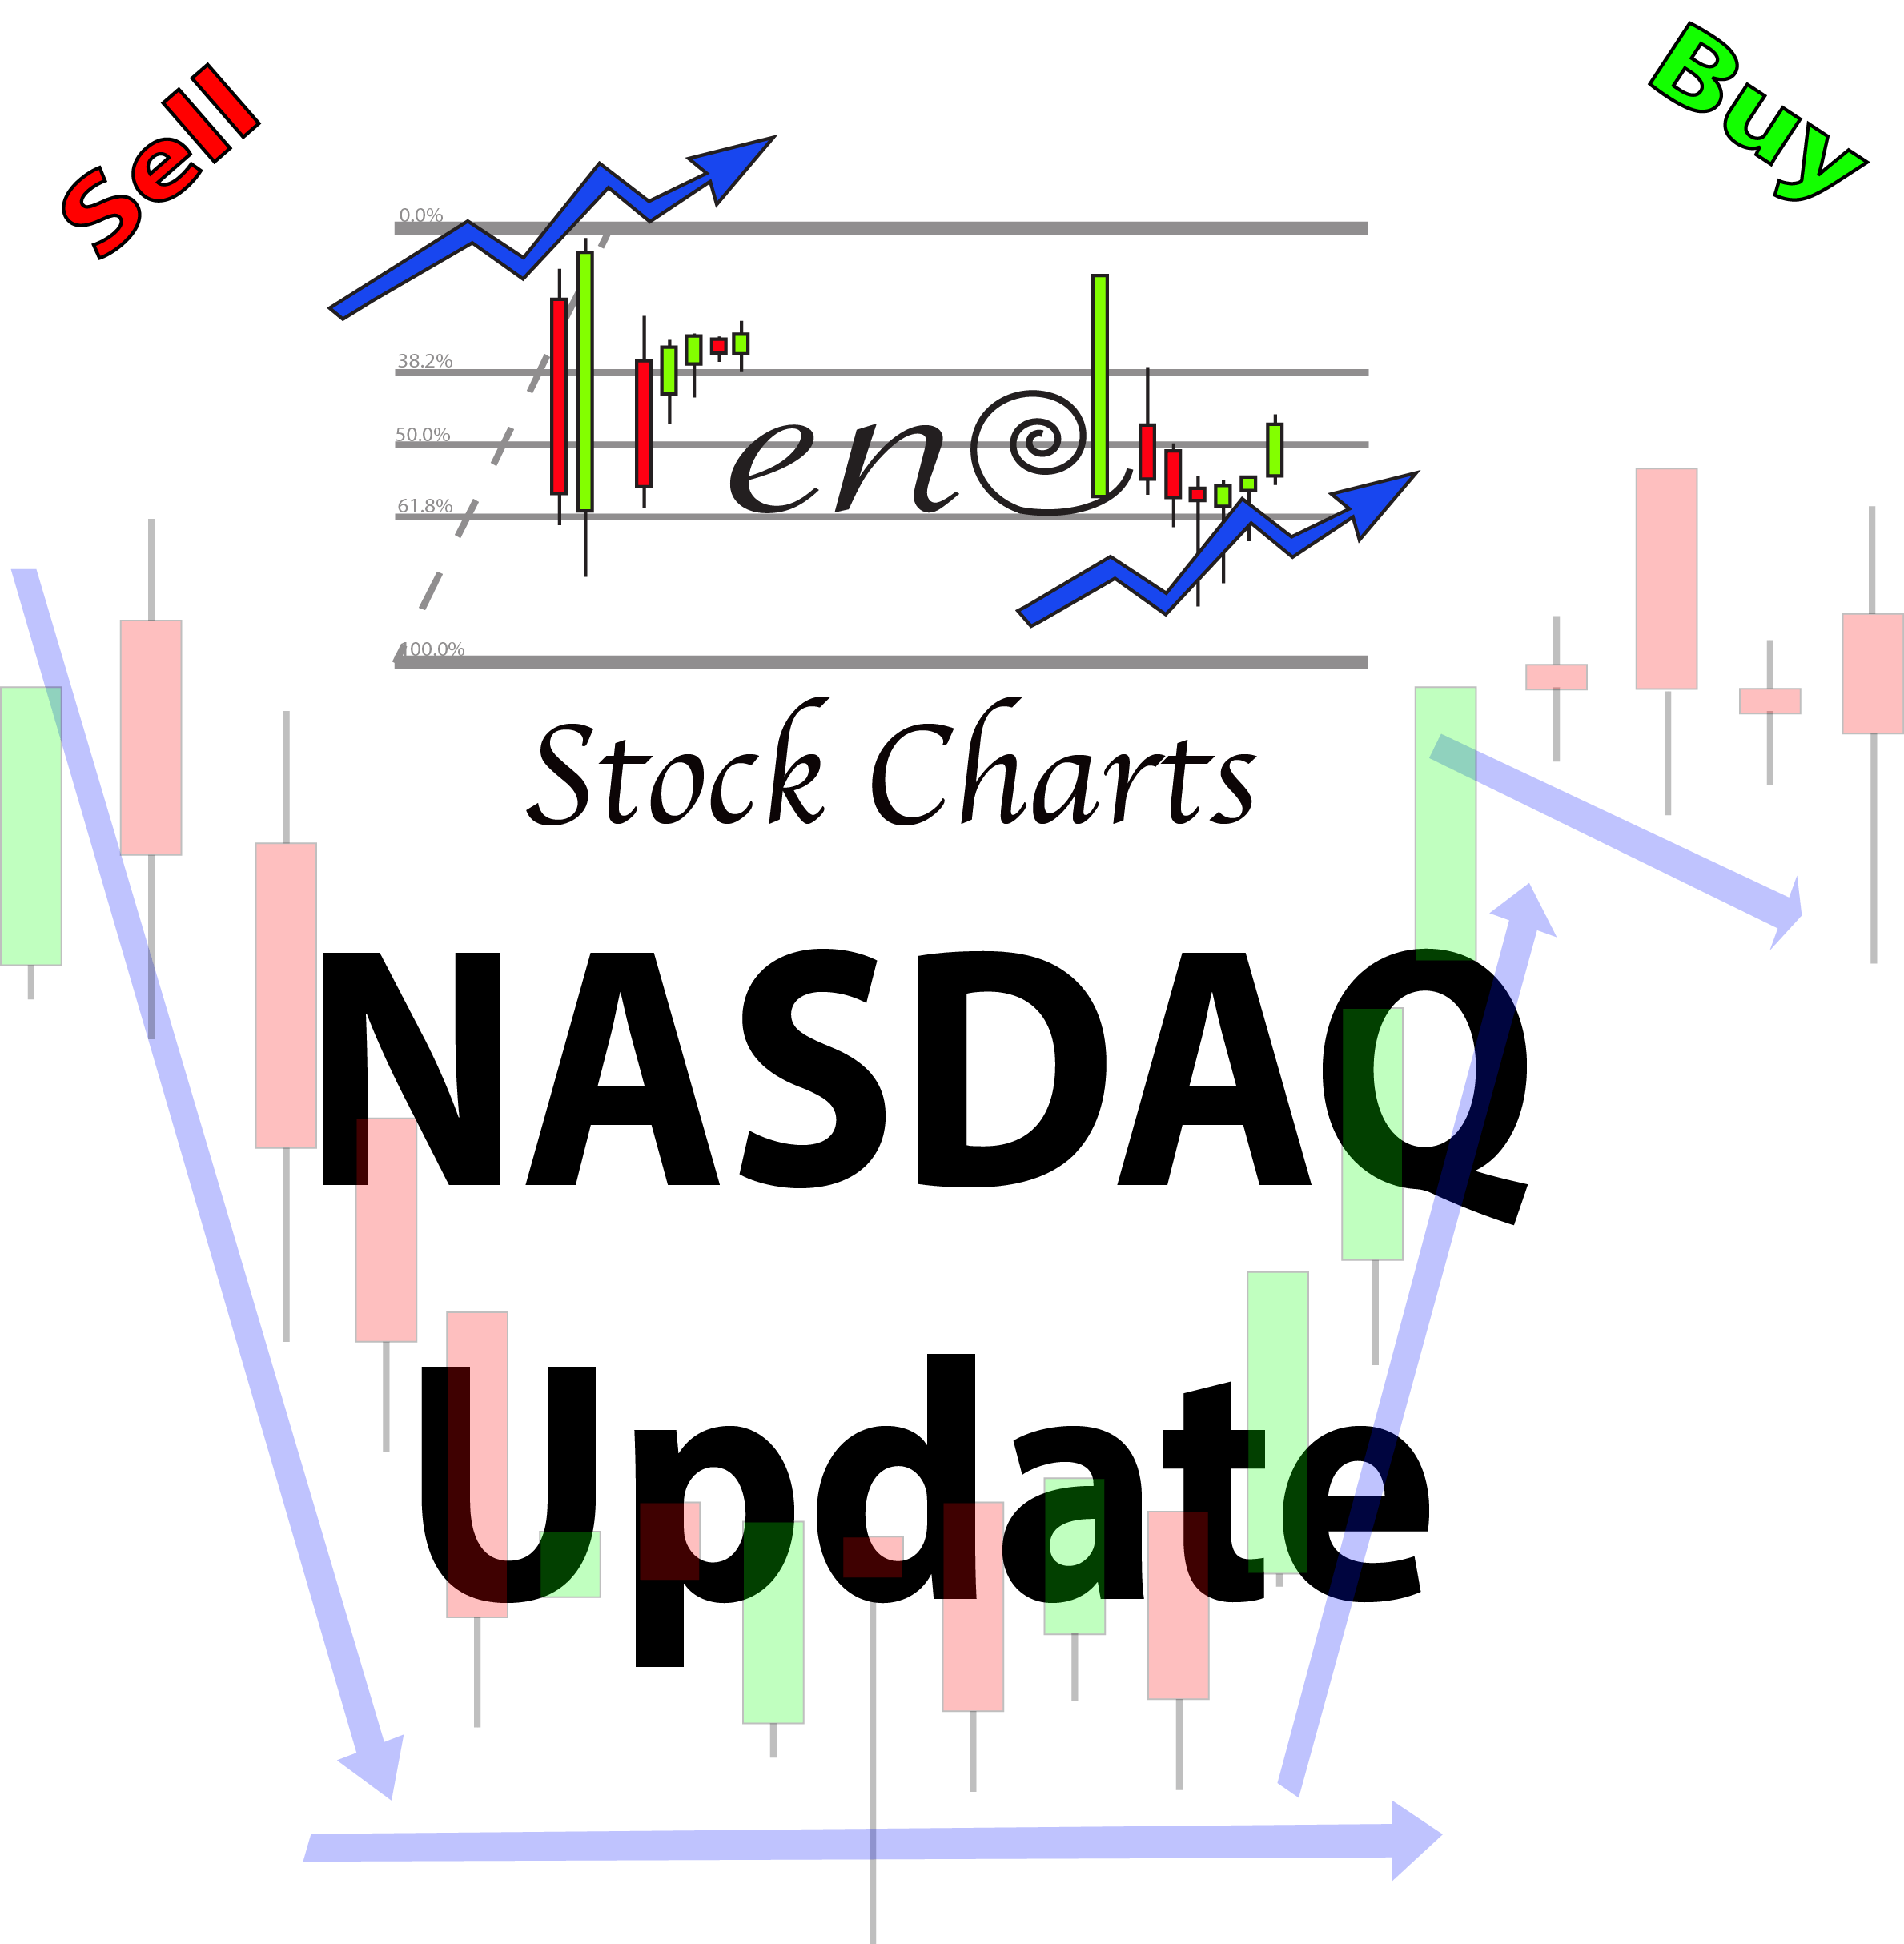 Nasdaq Composite 10/5/2015 – Ready To Trim Holdings?